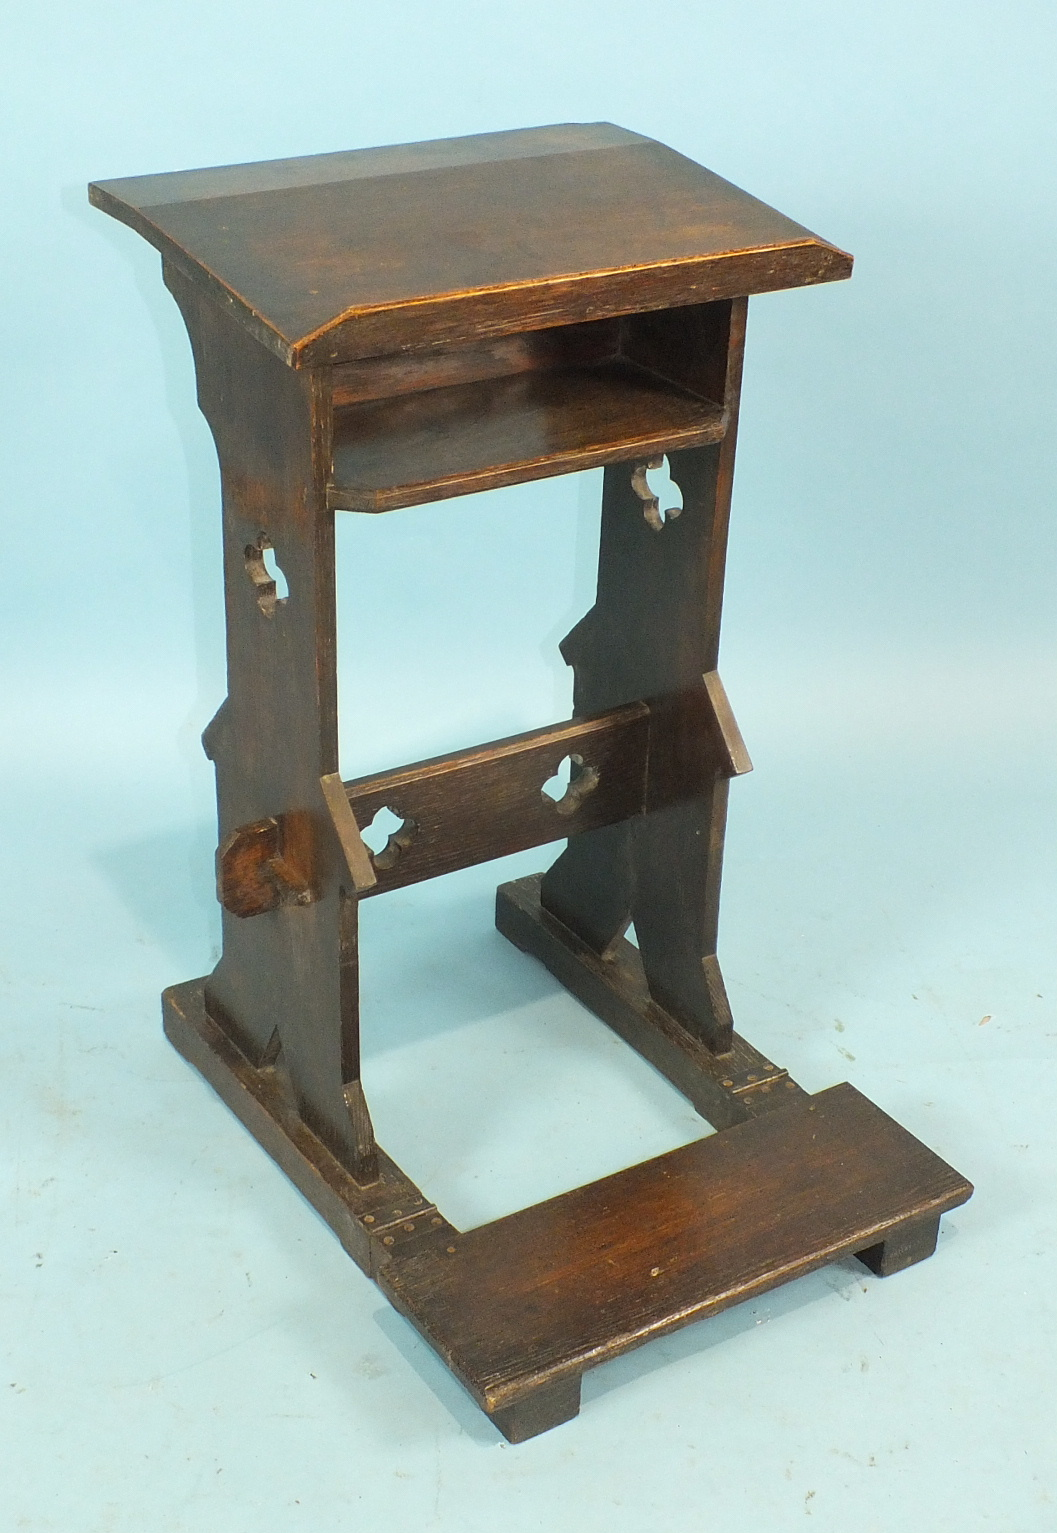 Lot 43 - A 19th century oak prayer lectern with folding kneeling stool, stamped 'S Pauling', 41cm wide,